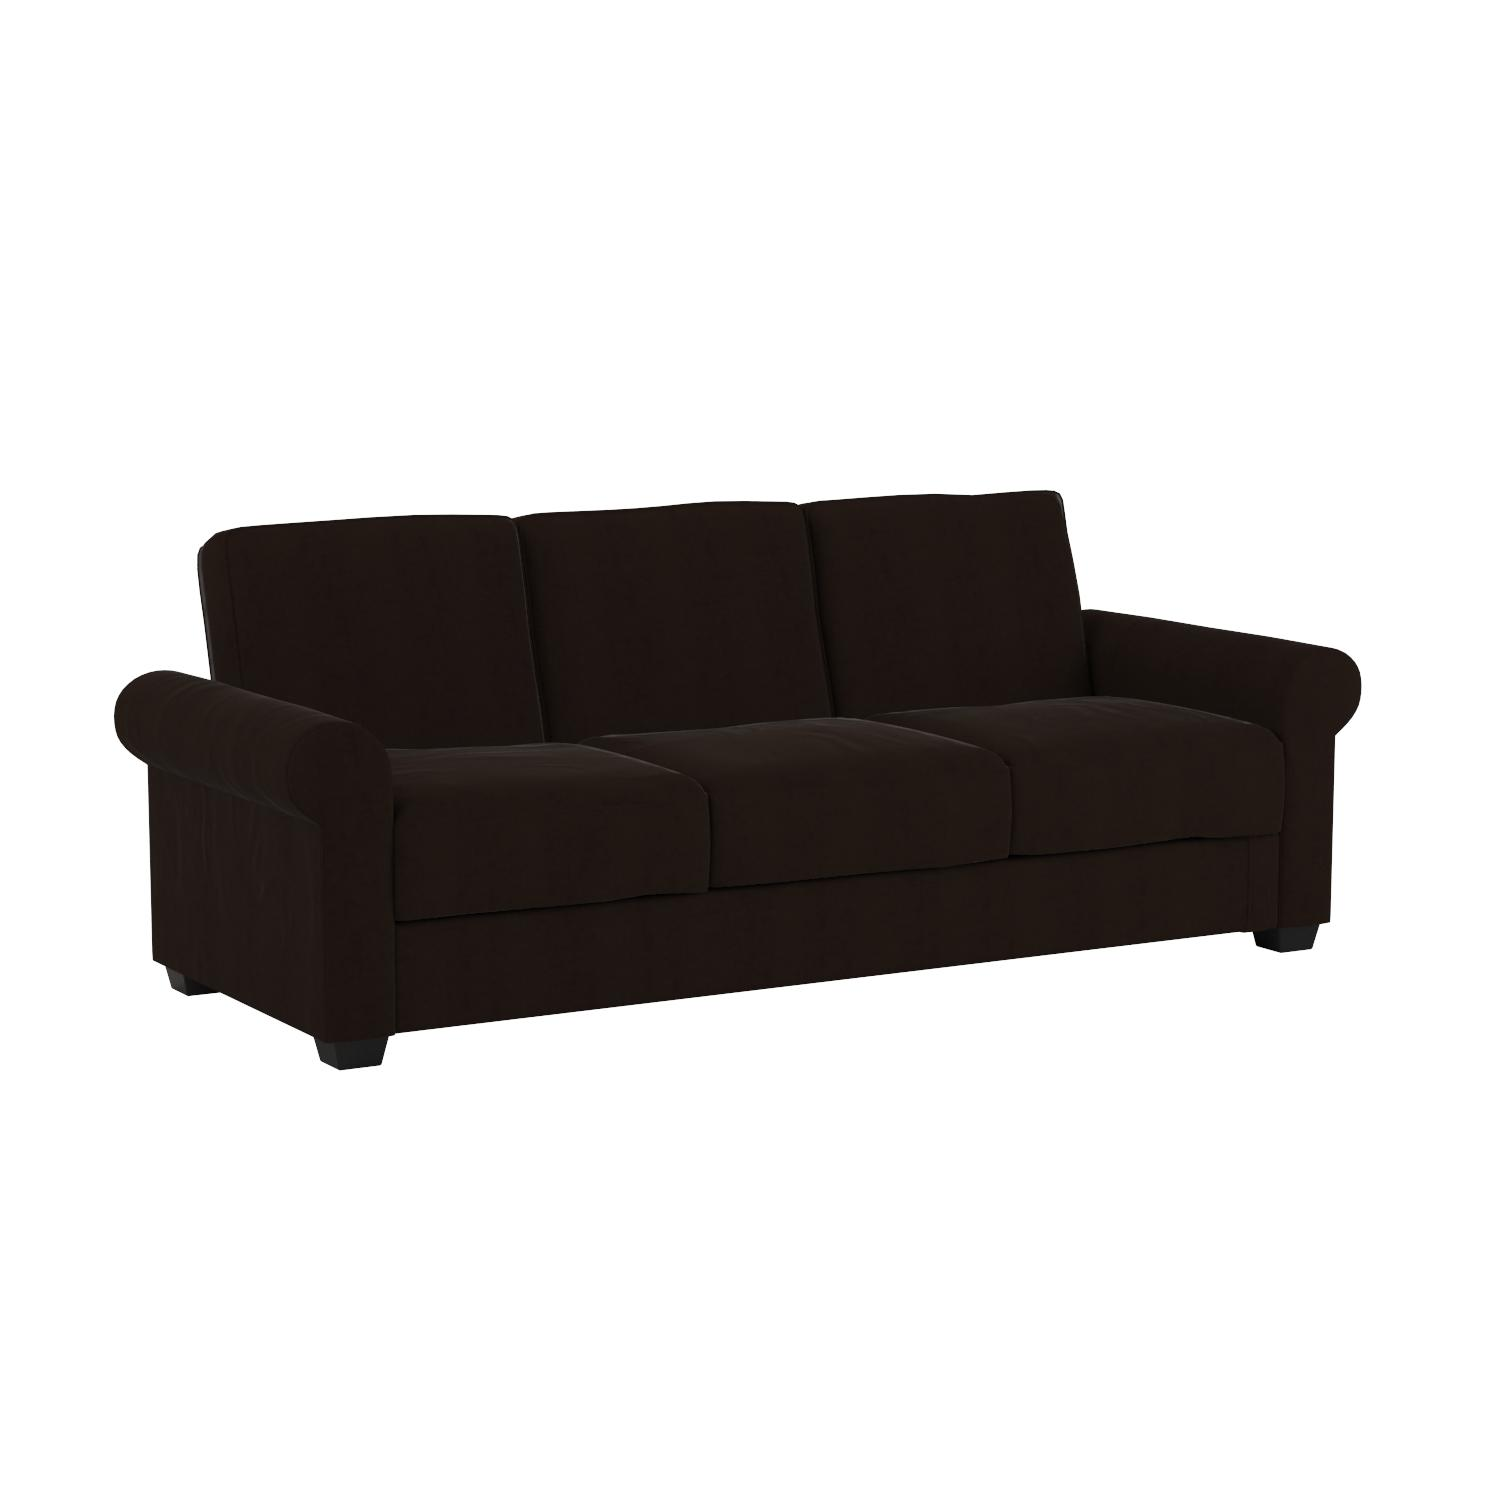 Amazon Serta Dream Convertible Eli Sofa Java Kitchen & Dining